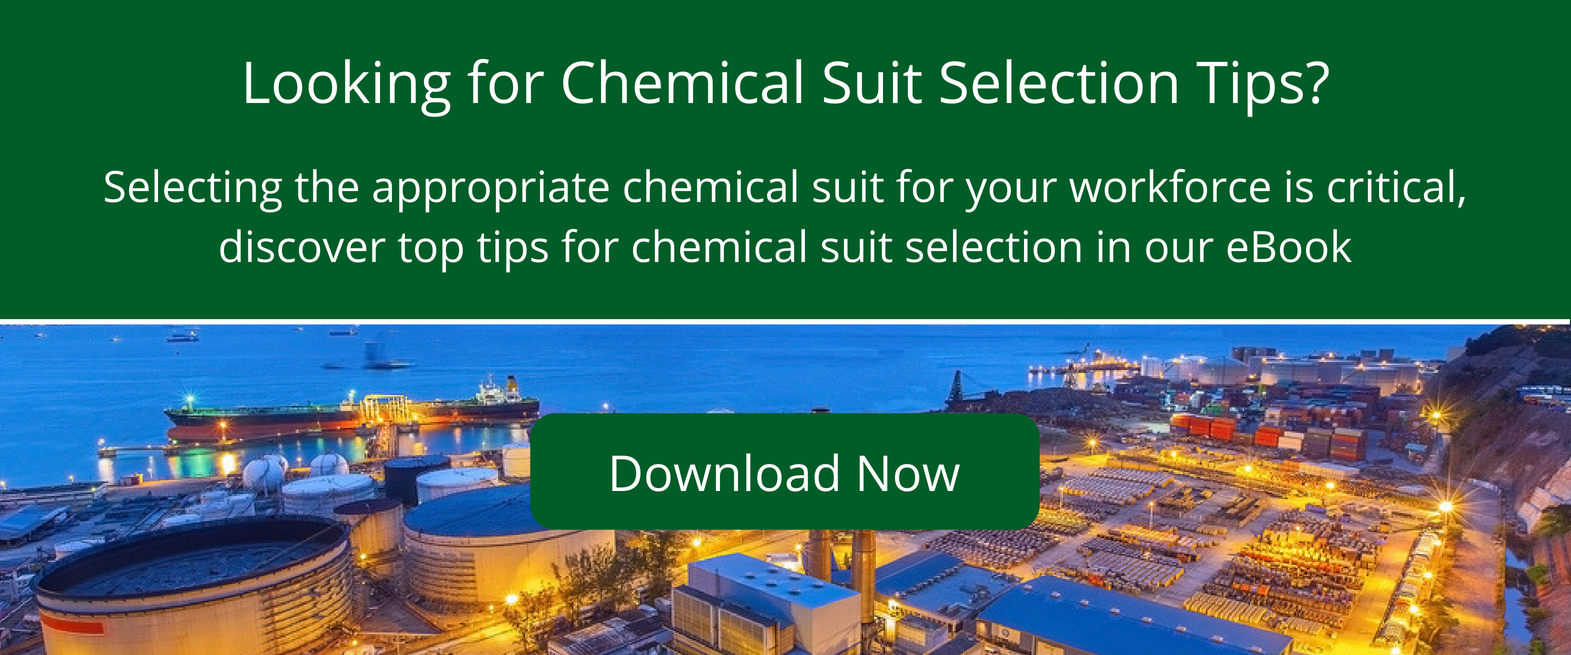 Selecting the right chemical suit for the job